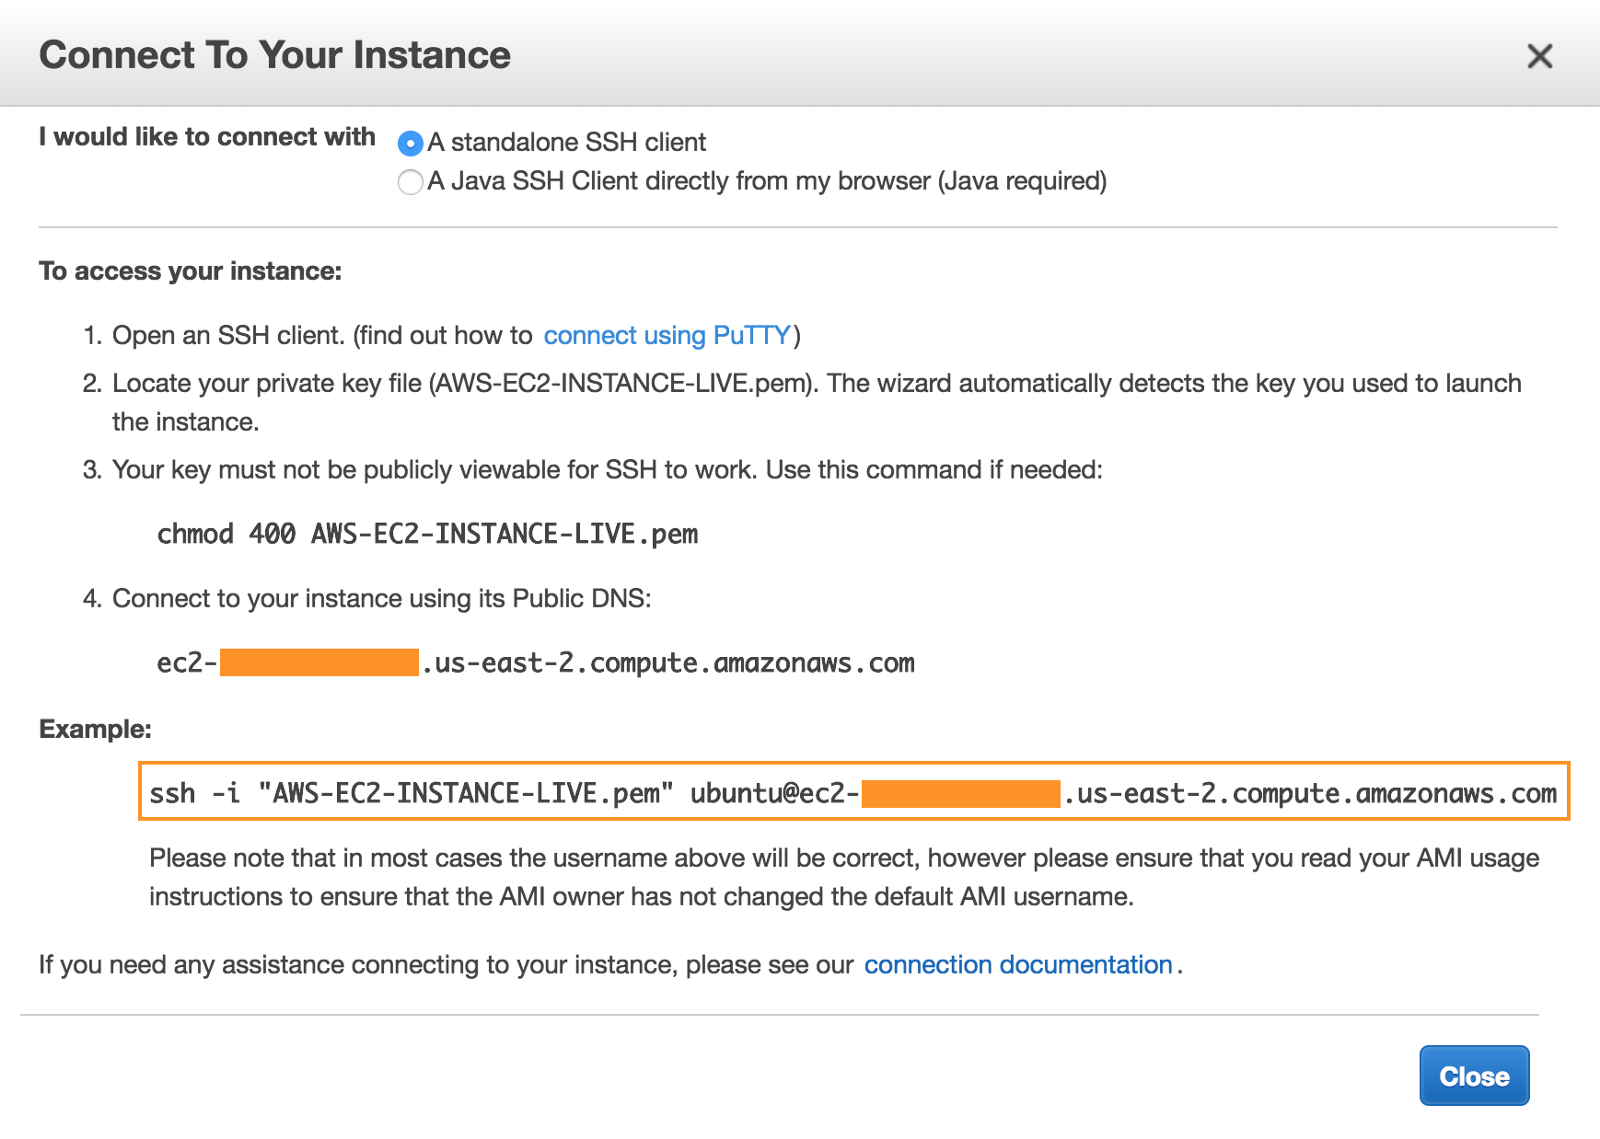 Make your Amazon EC2 instance up and running  - By